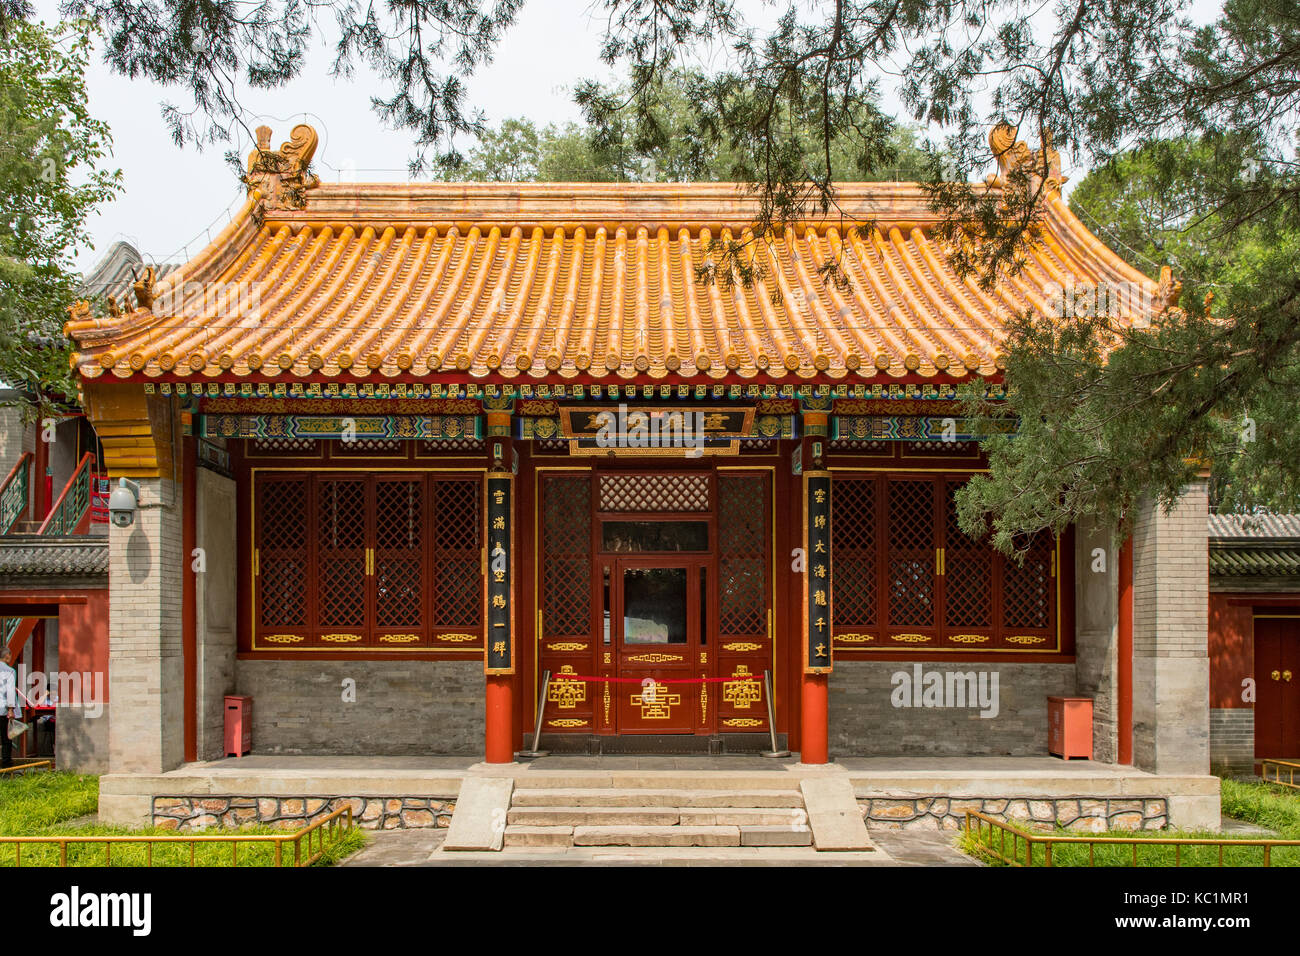 Hall at Temple of Timely Rains and Extensive Moisture, Summer Palace, Beijing, China - Stock Image